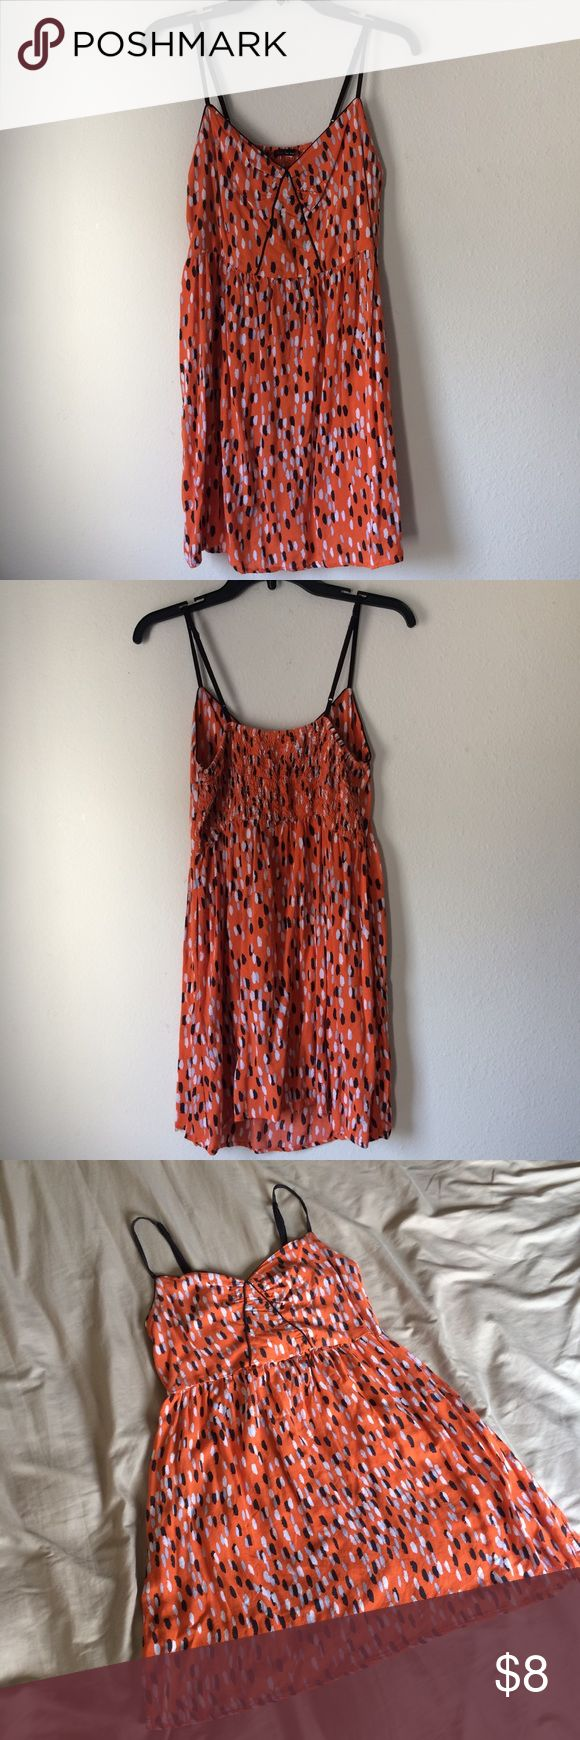 Bright orange mini dress with pockets A fun mini dress with pockets. It has adjustable straps for a comfy fit. The size tag fell, but it's around a Medium. Please let me know if you have questions.☺️ NOT UO, JUST FOR EXPOSURE! Urban Outfitters Dresses Mini